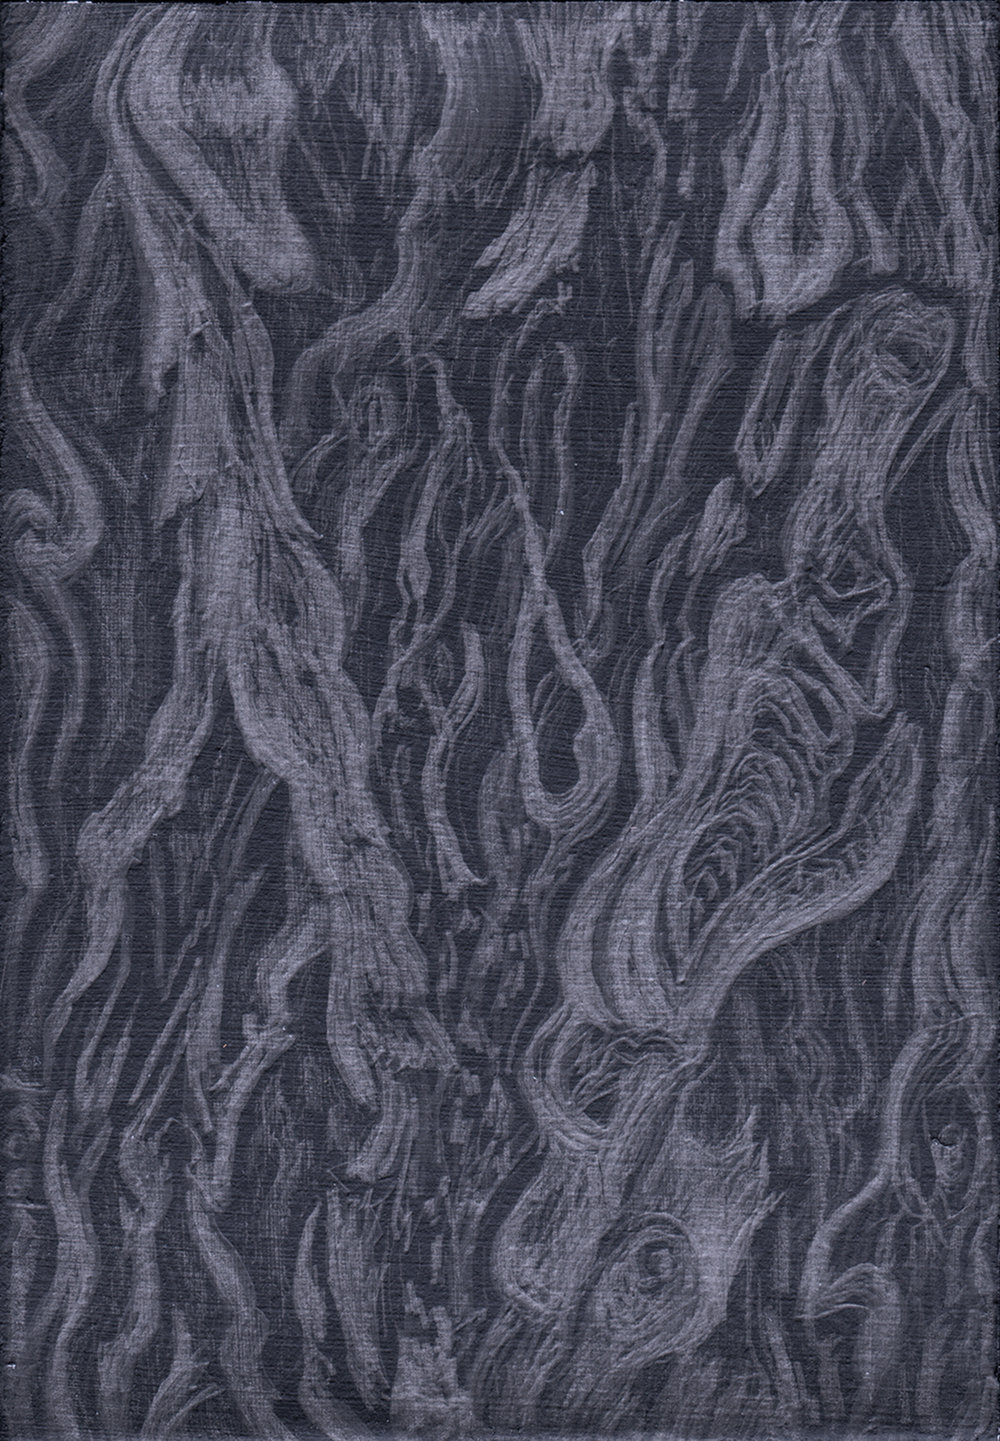 Apoyos I - coffee tree bark - silverpoint, Jeanine Cook artist